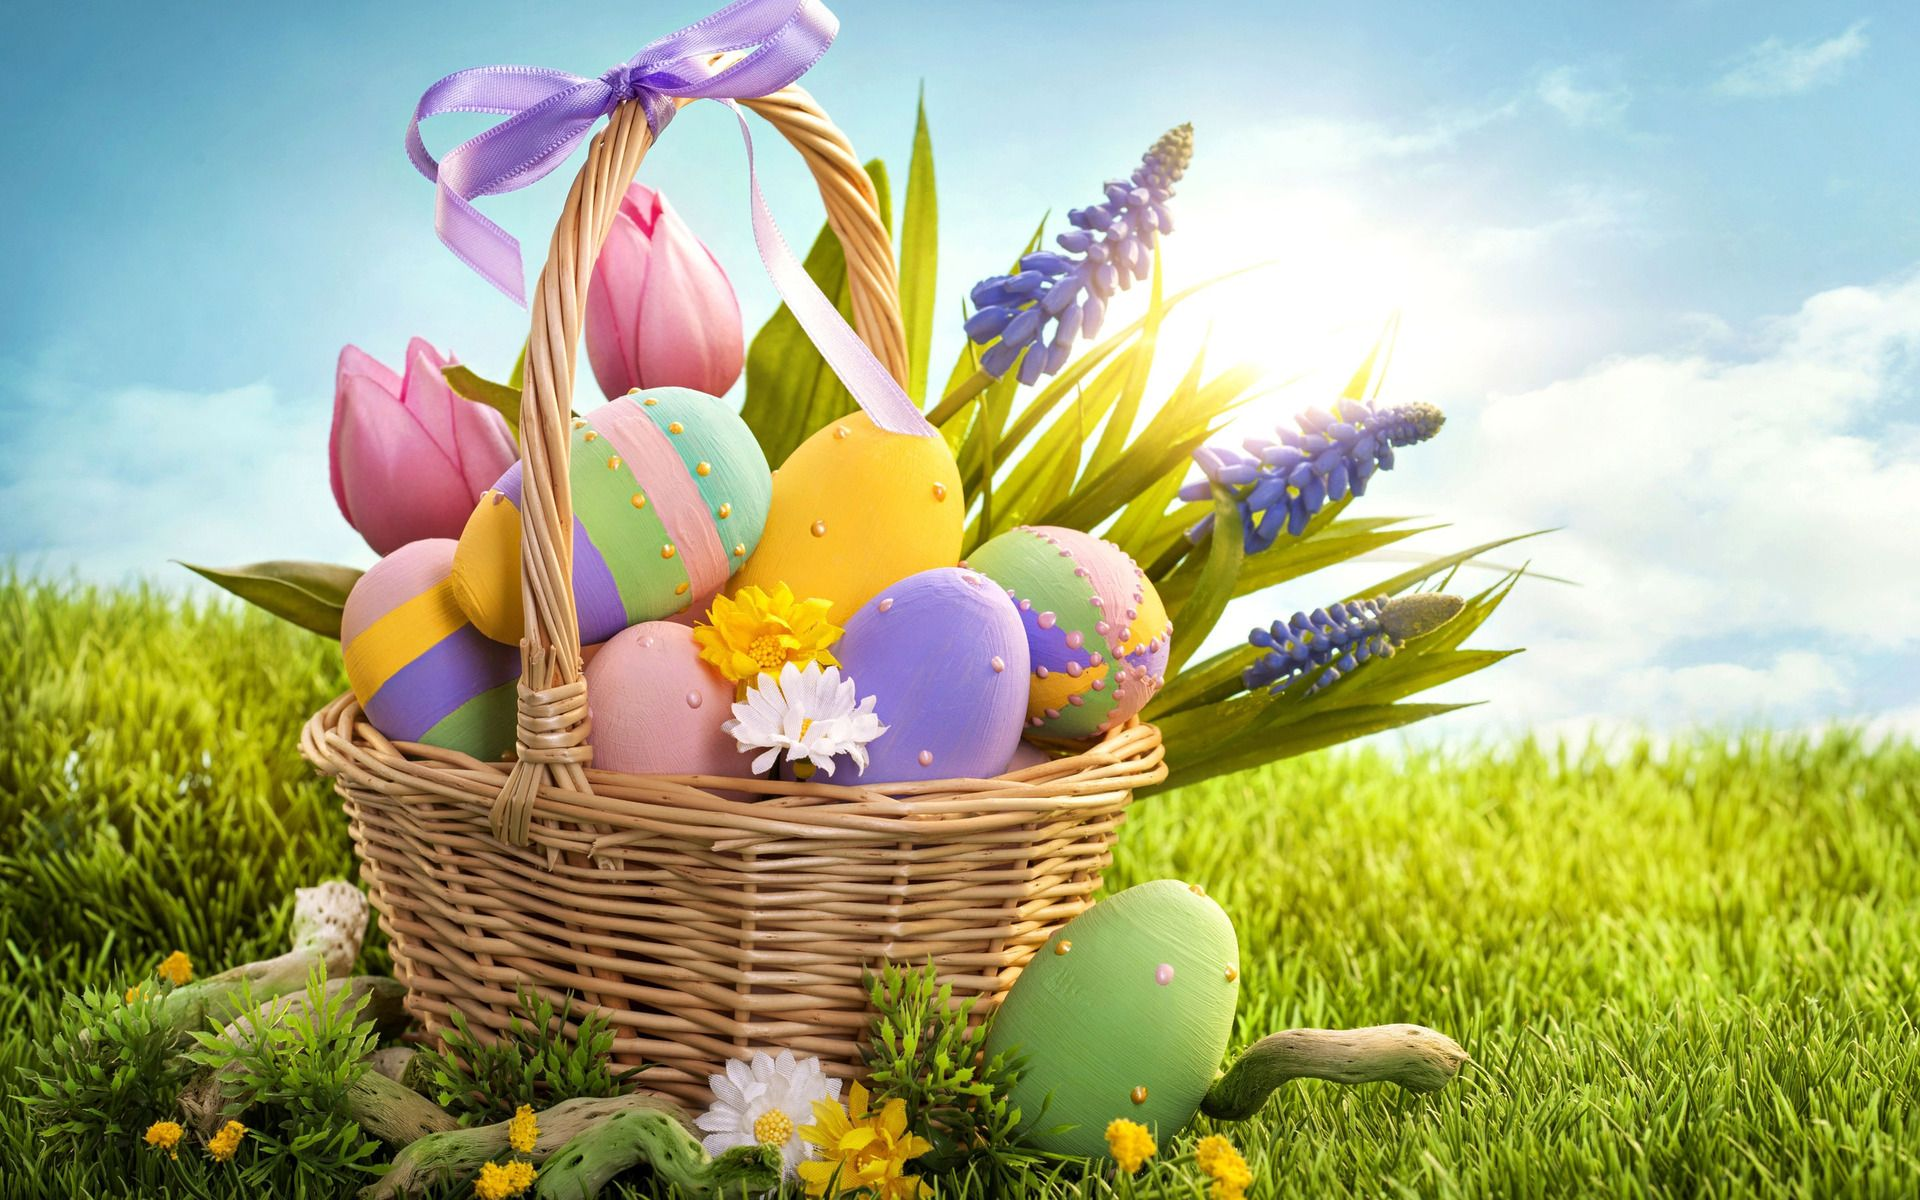 Colorful Easter eggs Wallpaper Easter Eggs Wallpapers